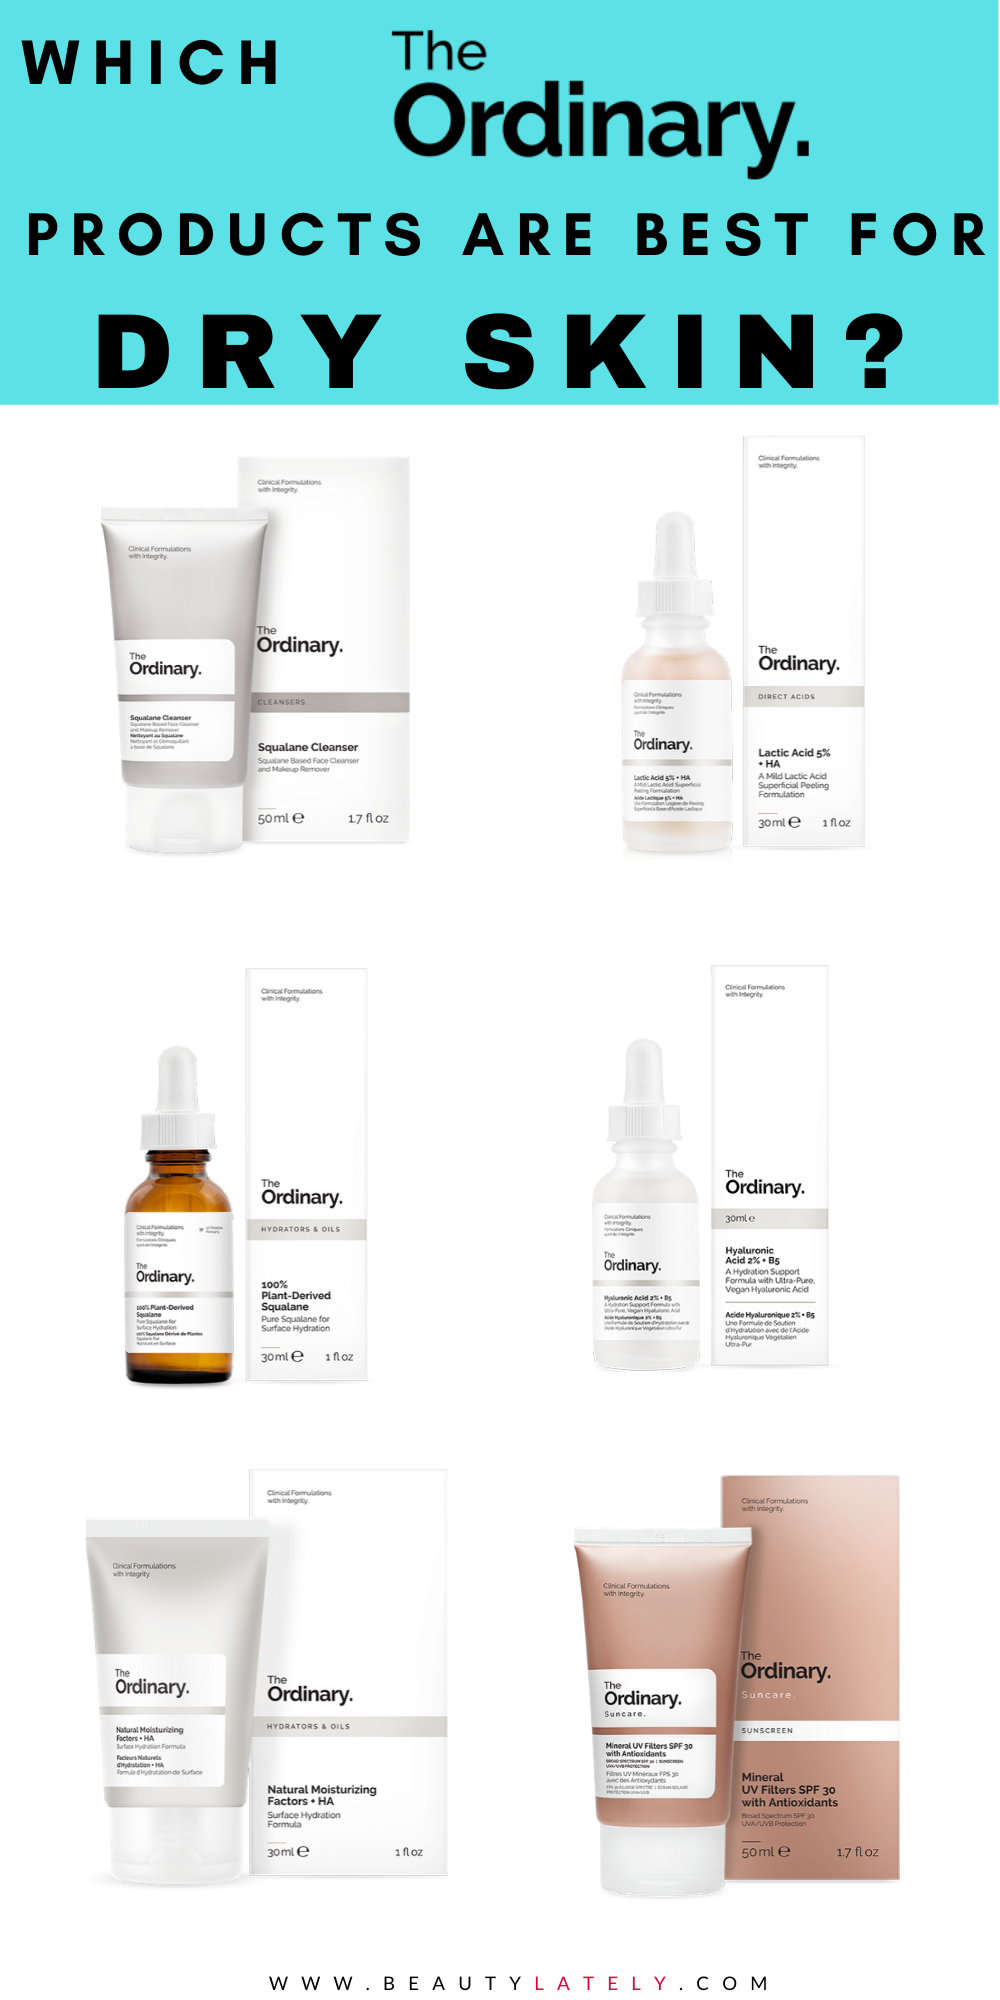 How To Pick The Best The Ordinary Products For Dry Skin In 2020 The Ordinary For Dry Skin Moisturizer For Dry Skin Oil For Dry Skin